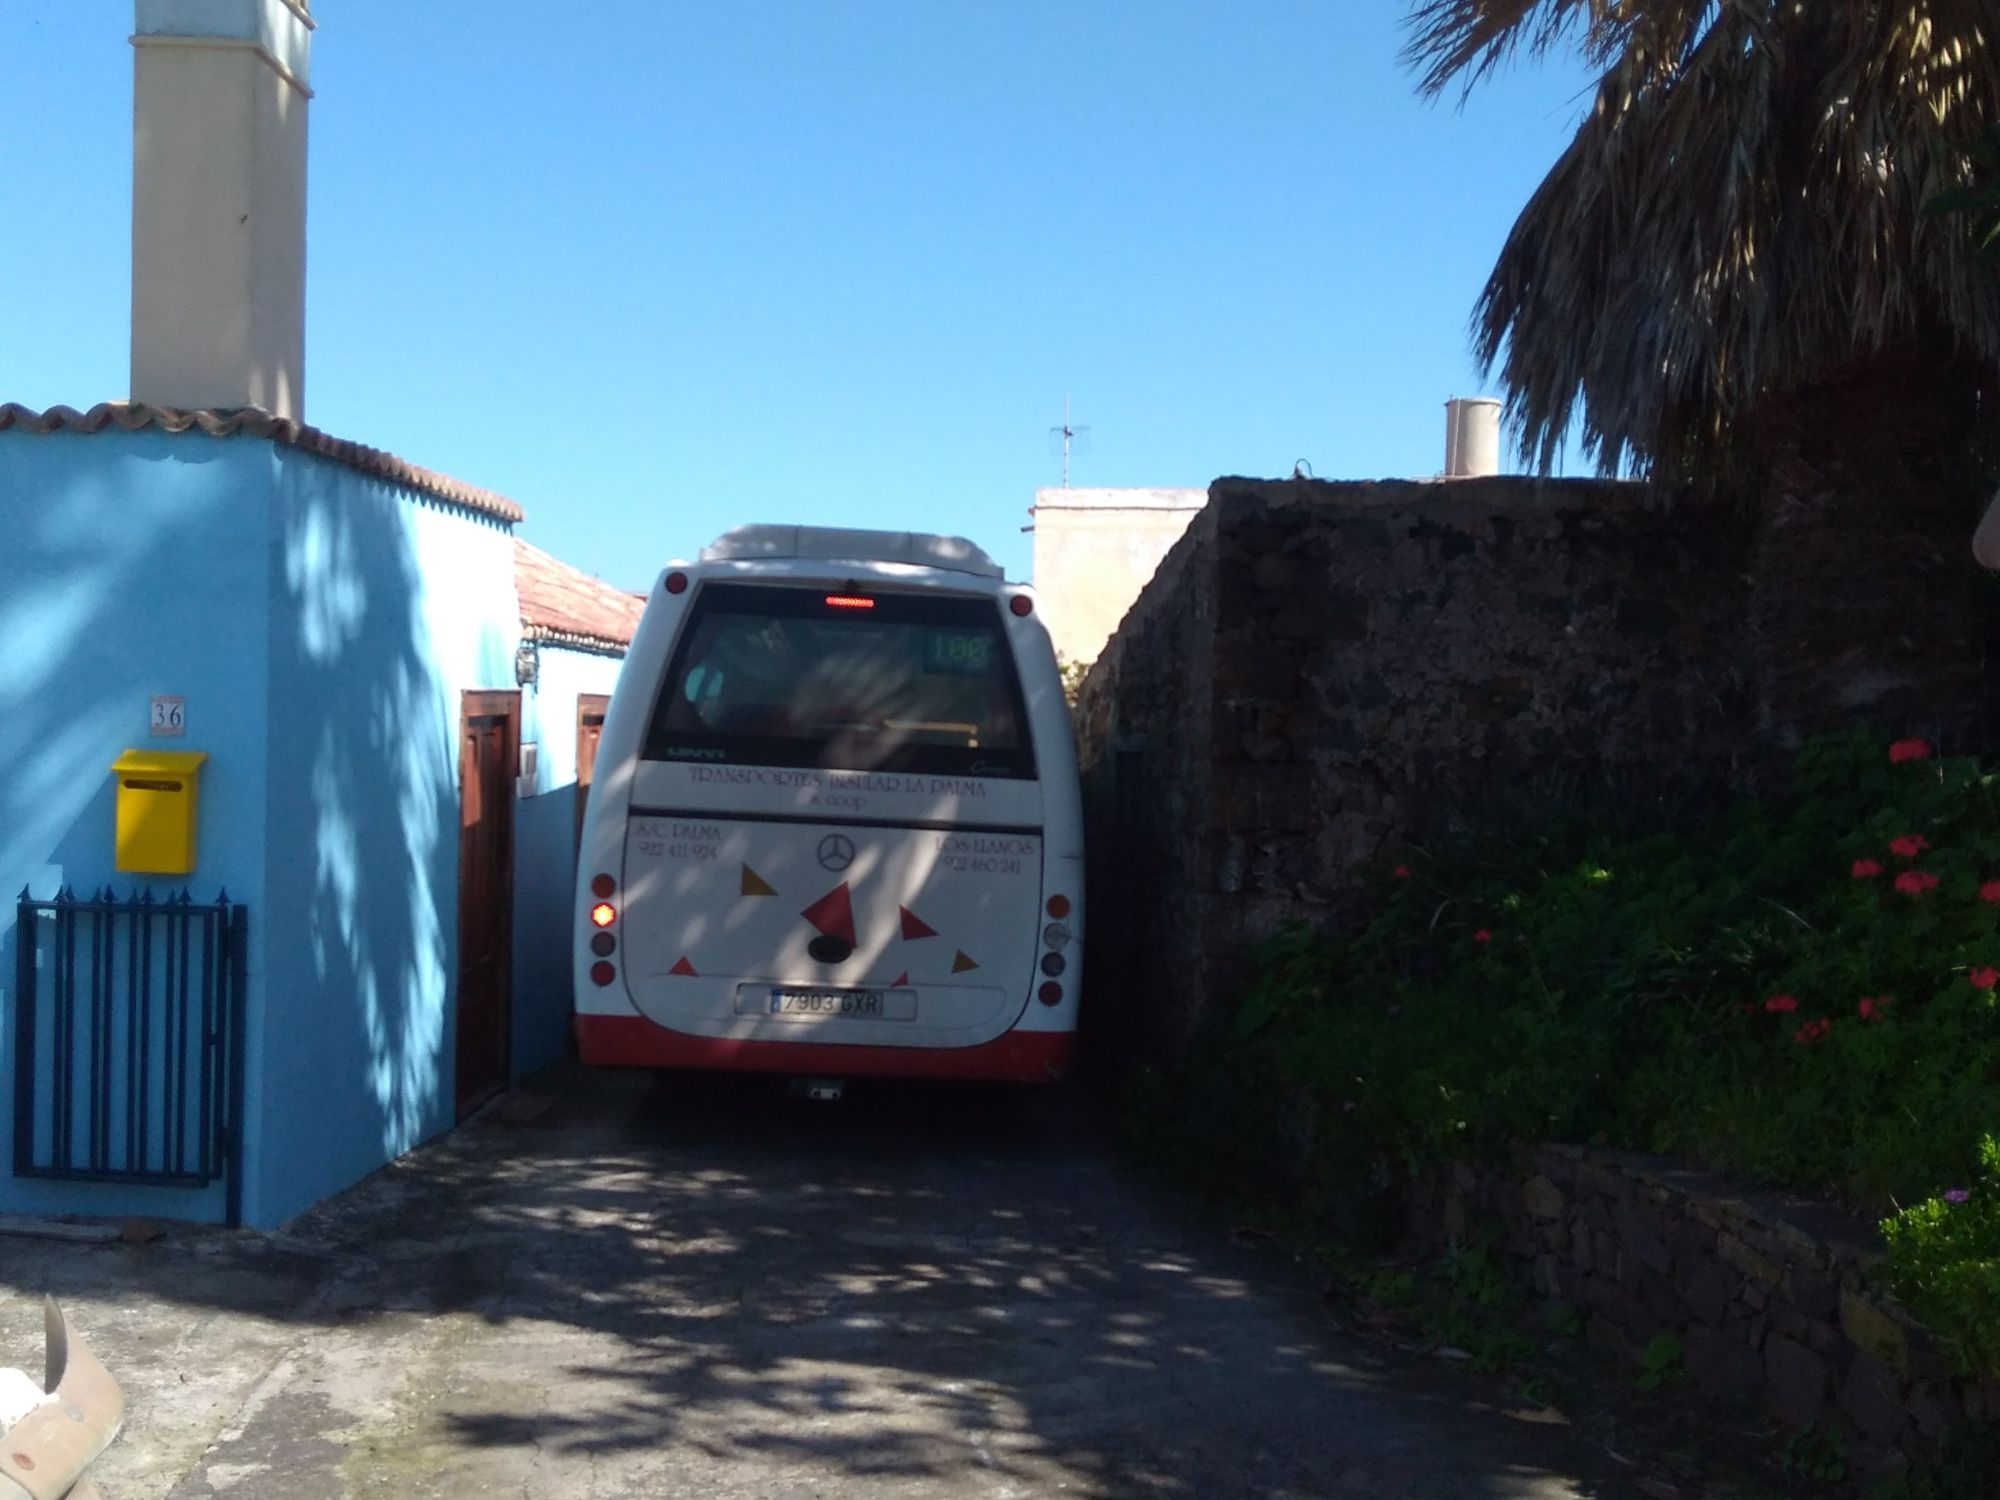 bus in franceses going to Barlovento